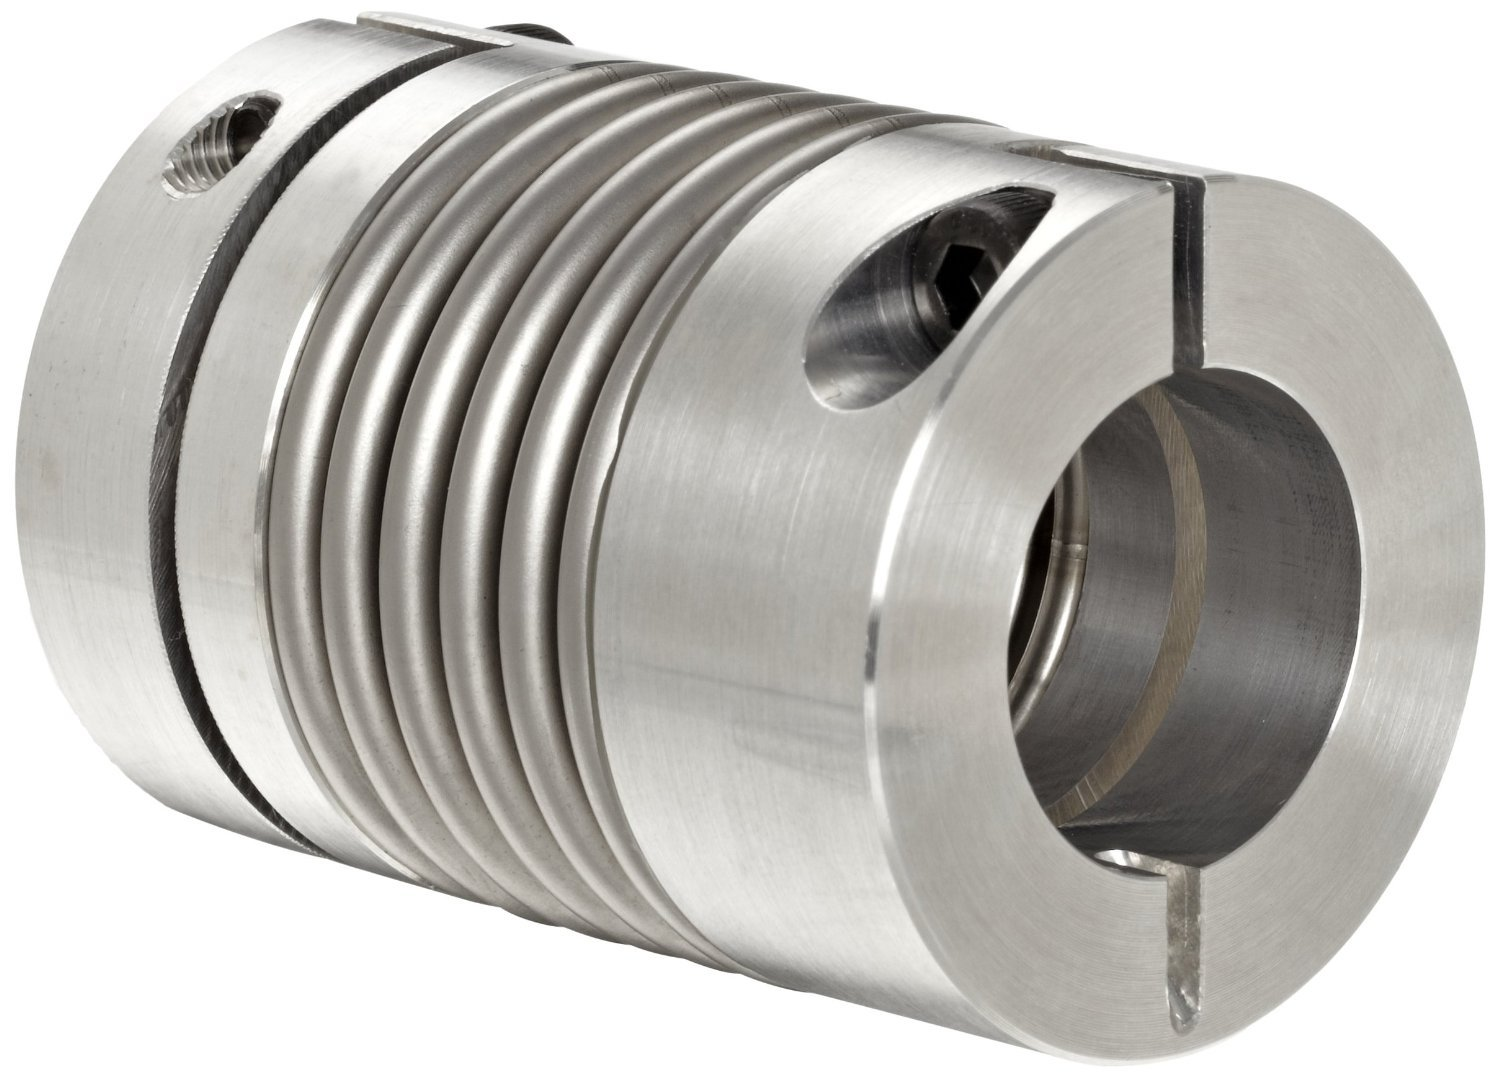 531 in-lbs Nominal Torque Inch 3.071 Length Lovejoy 77013 Size BWLC-78 Bellows Clamp Style Coupling 0.625 Bore A 8600 rpm Max Rotational Speed 0.625 Bore A 0.625 Bore B 2.598 OD 3.071 Length 2.598 OD Complete Coupling 0.625 Bore B